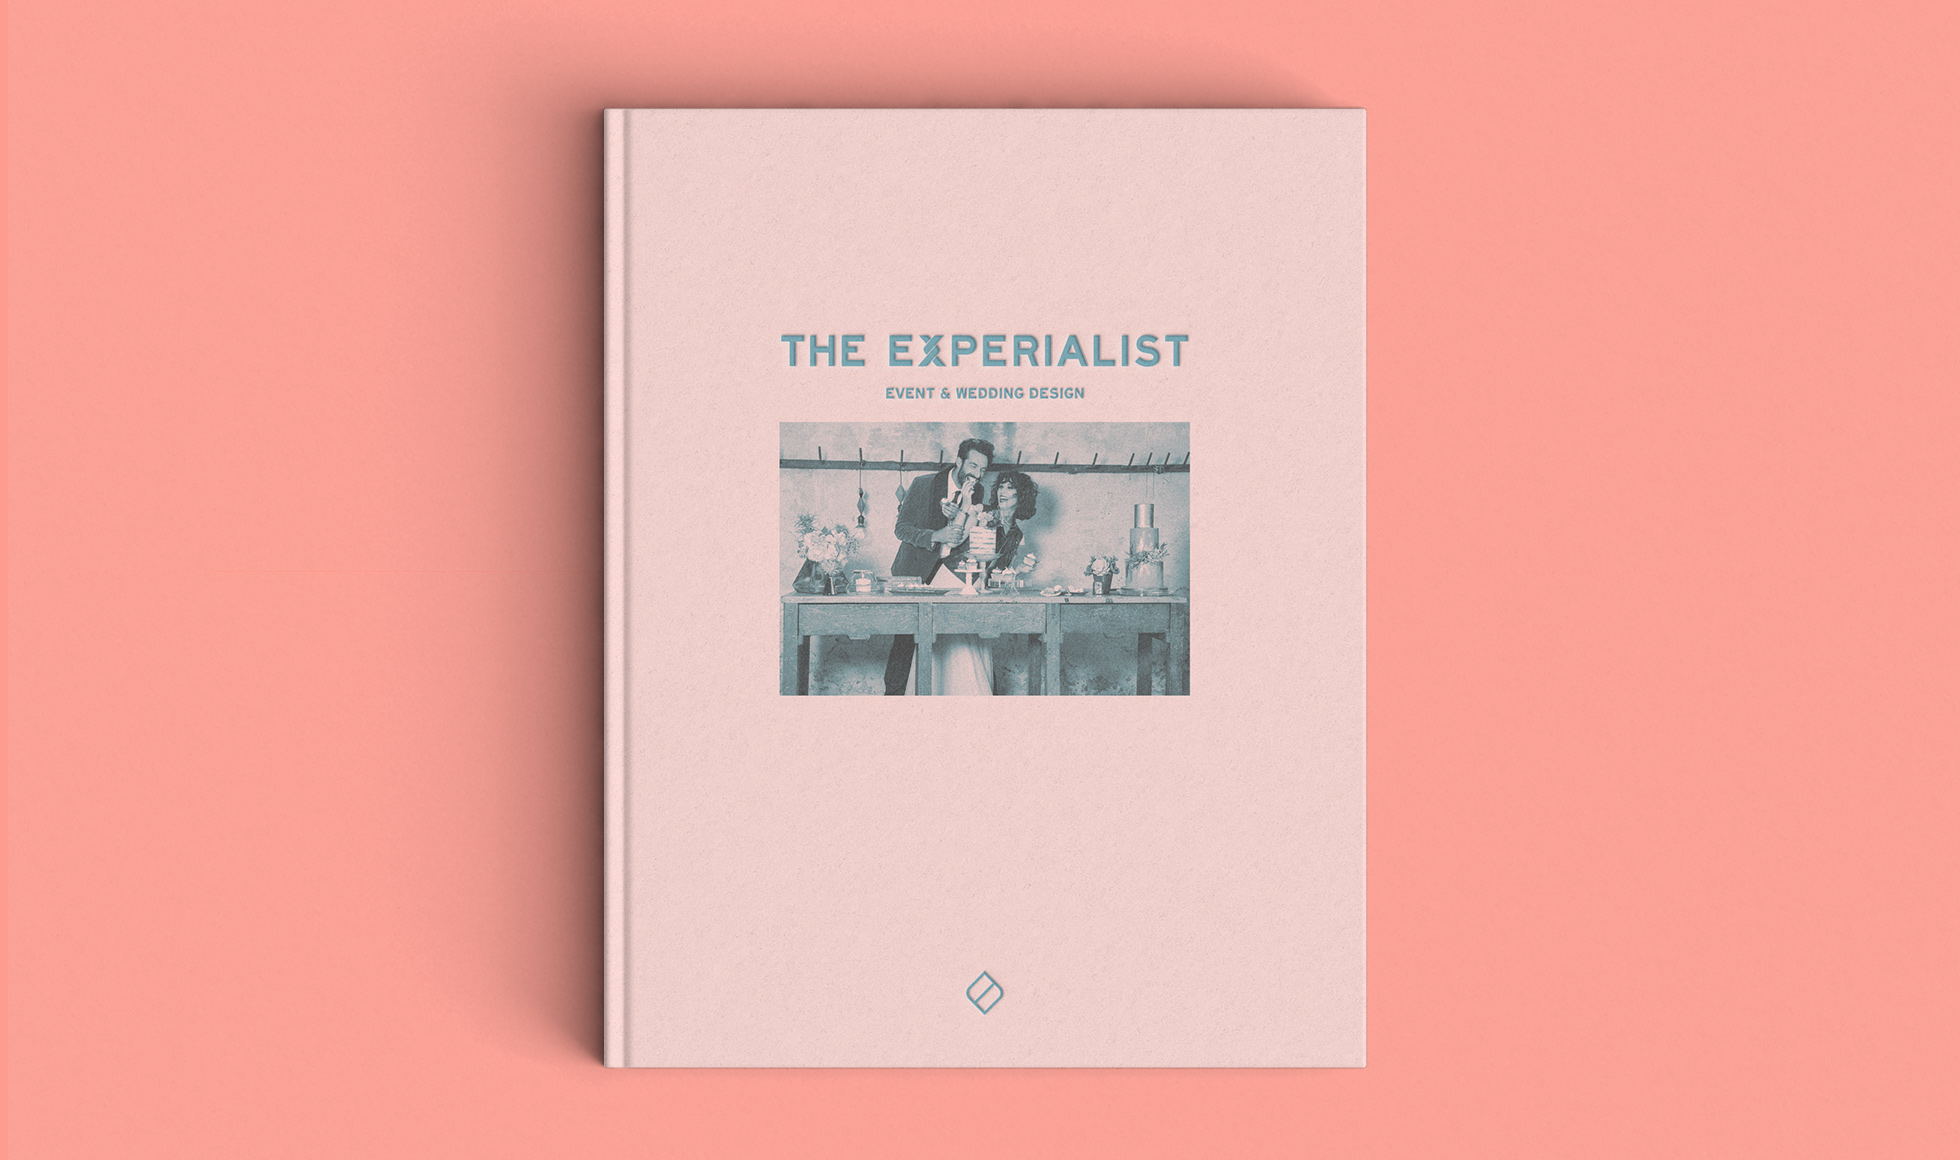 THE-EXPERIALIST-1960116001